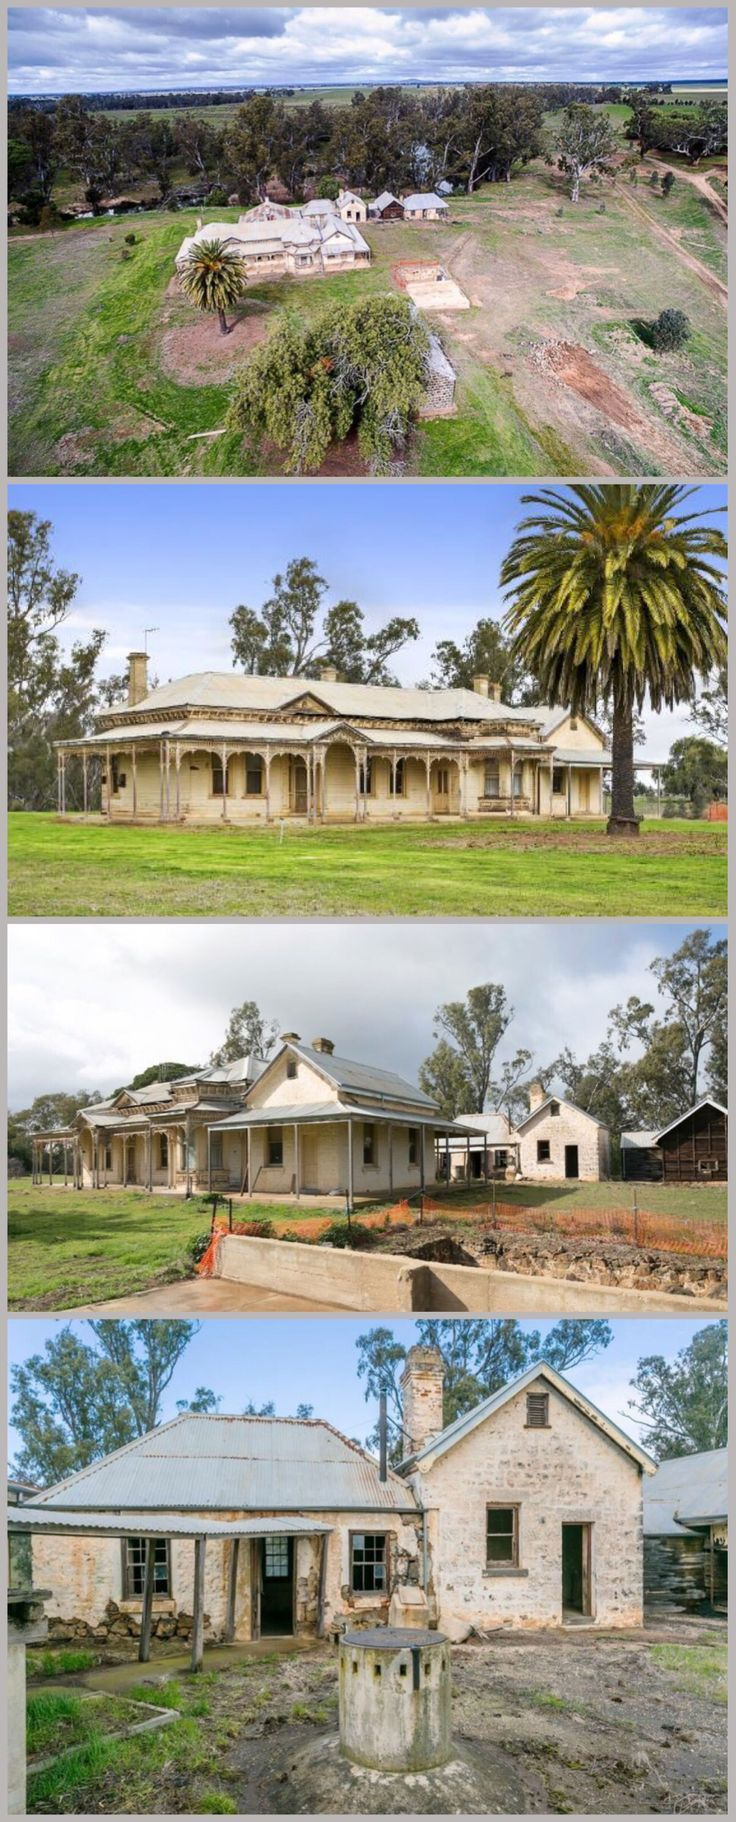 Memsie Homestead, Bridgewater (179km NW of Melbourne) is situated on the banks of the Loddon River. The oldest part of the house is thought to date from 1841, with another section added in 1860 and the front section, of solid brick with weatherboard facing, in 1880. This part was designed by William Vahland, a German-born architect responsible for some of Bendigo's finest buildings, including the town hall and Shamrock Hotel. The homestead has been empty and derelict for over 20 years.